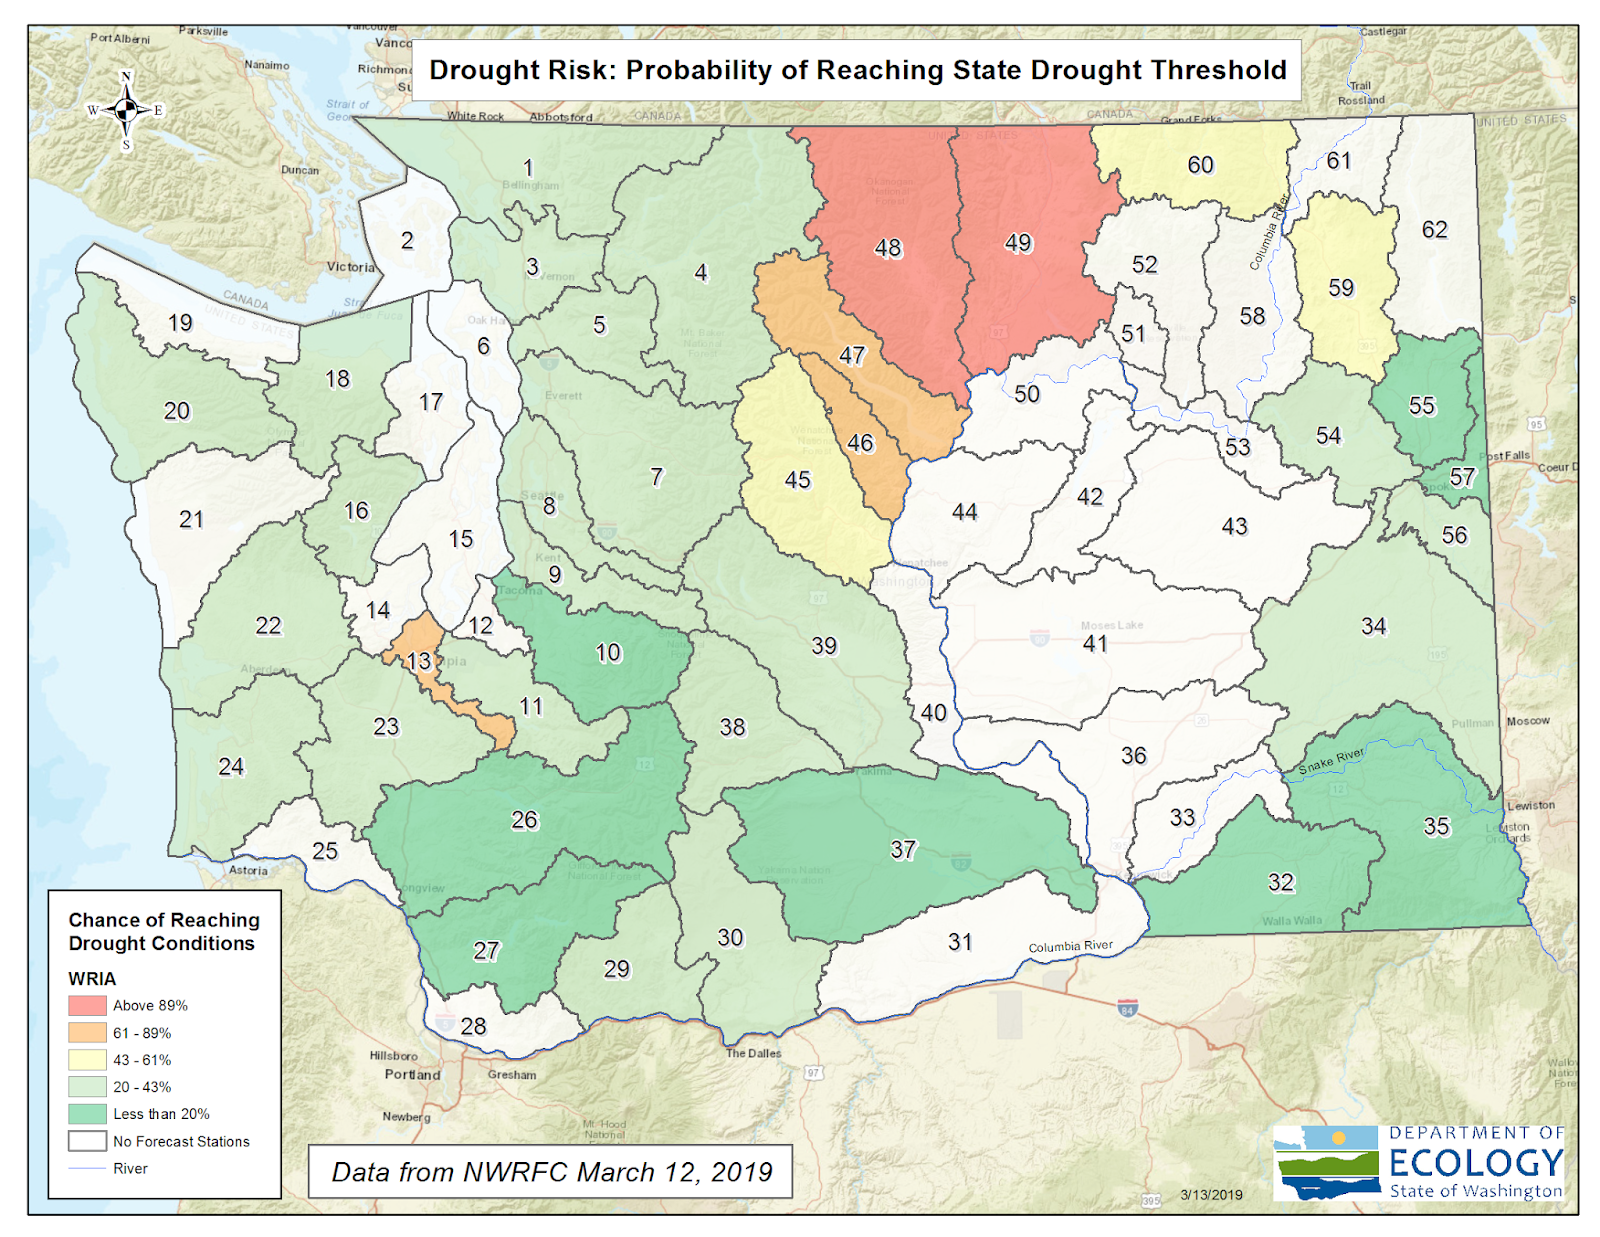 Graphic of Washington showing drought risk projections in Washington, dated March 12, 2019